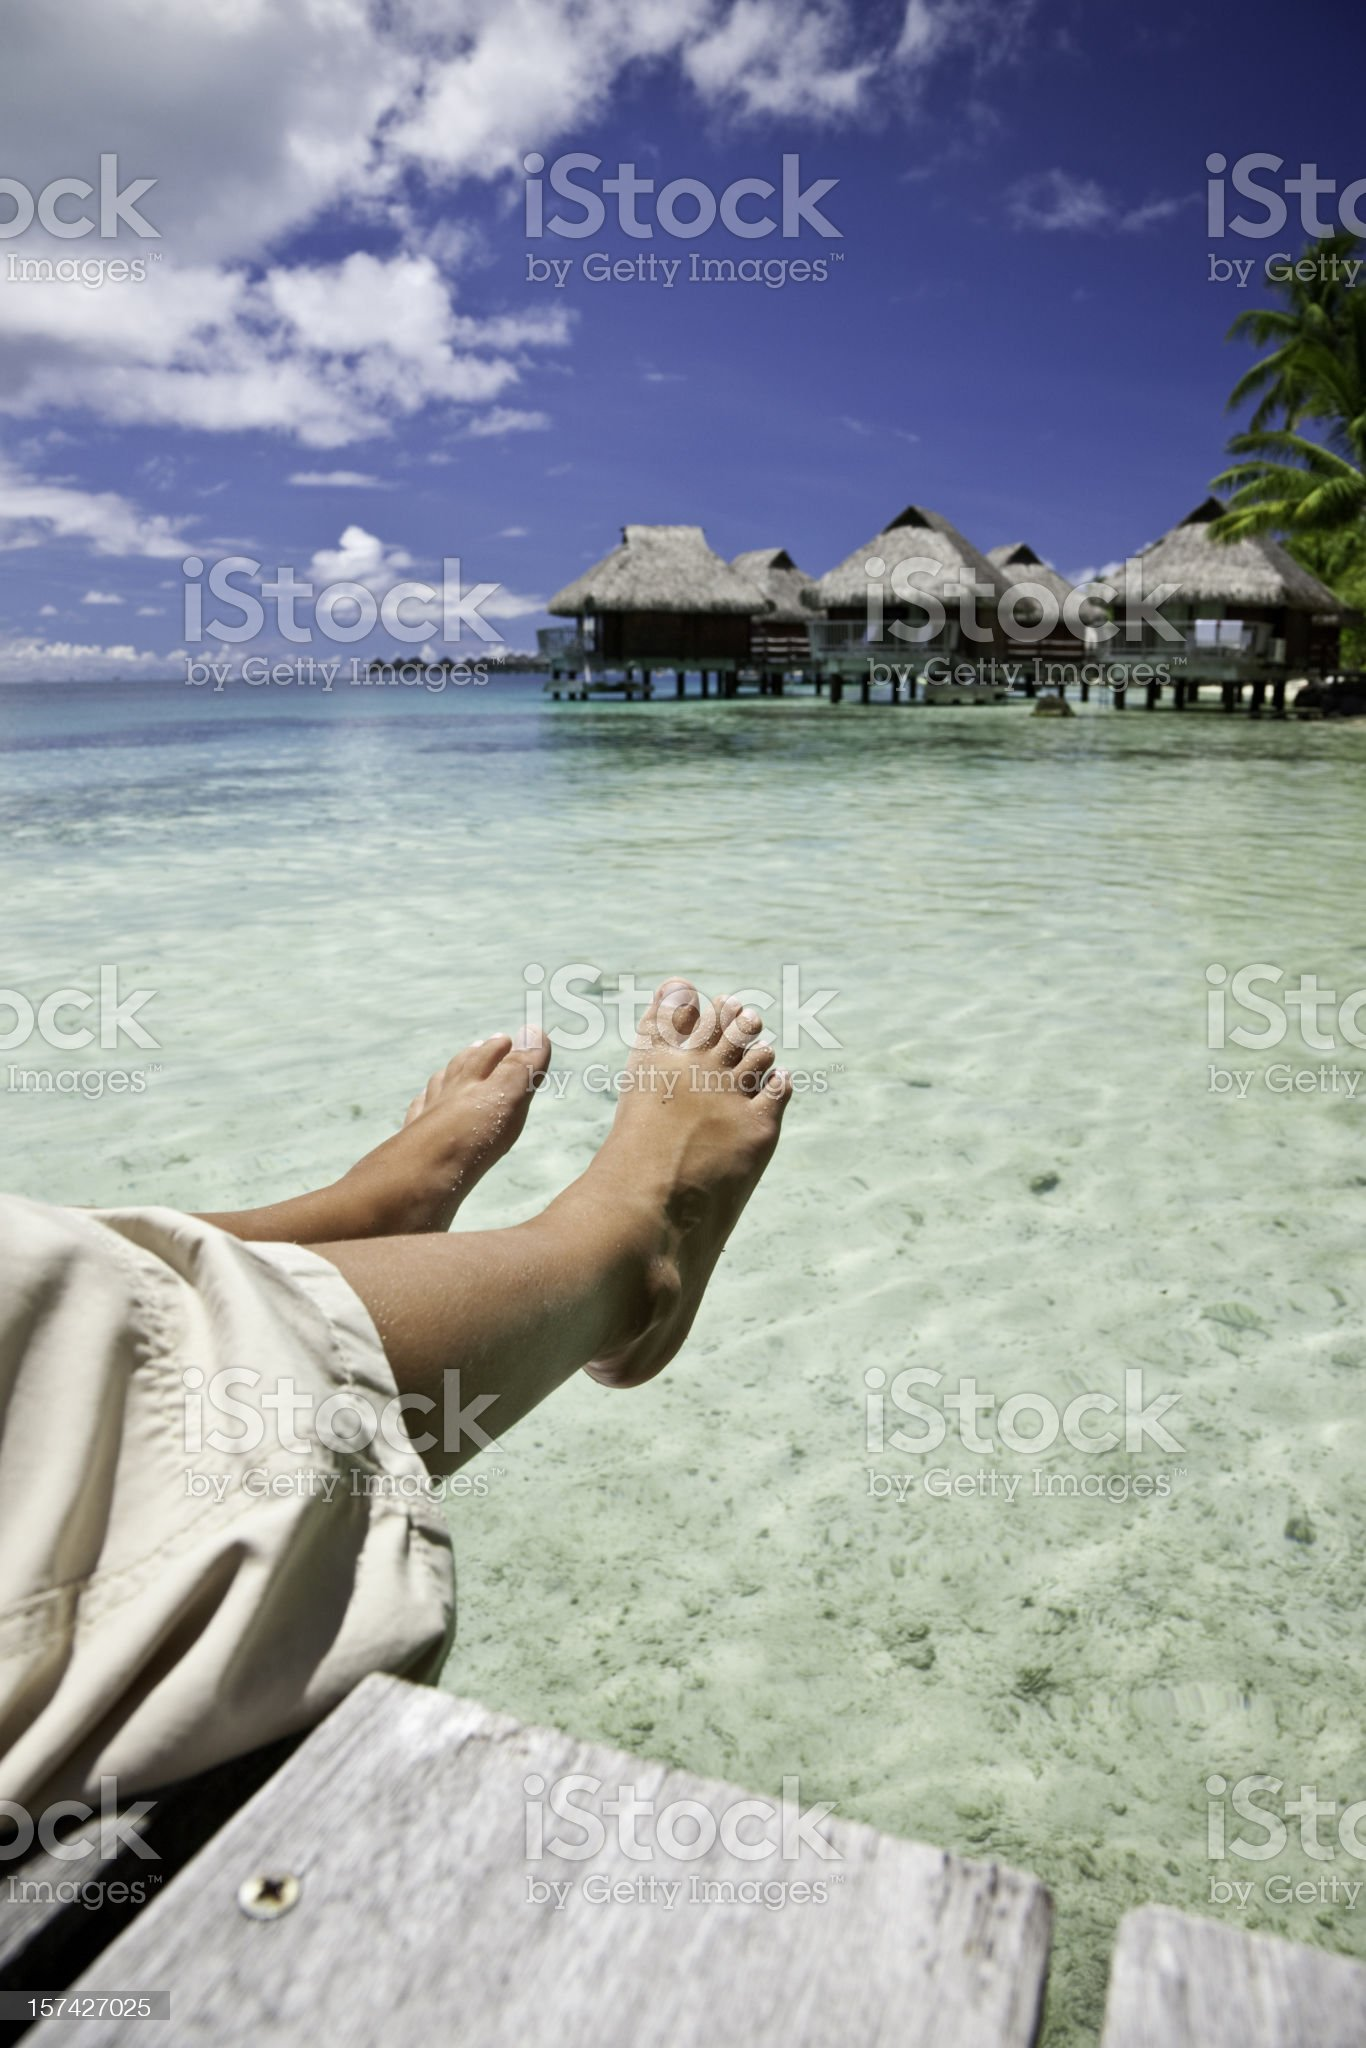 Summer Holiday Relaxation royalty-free stock photo